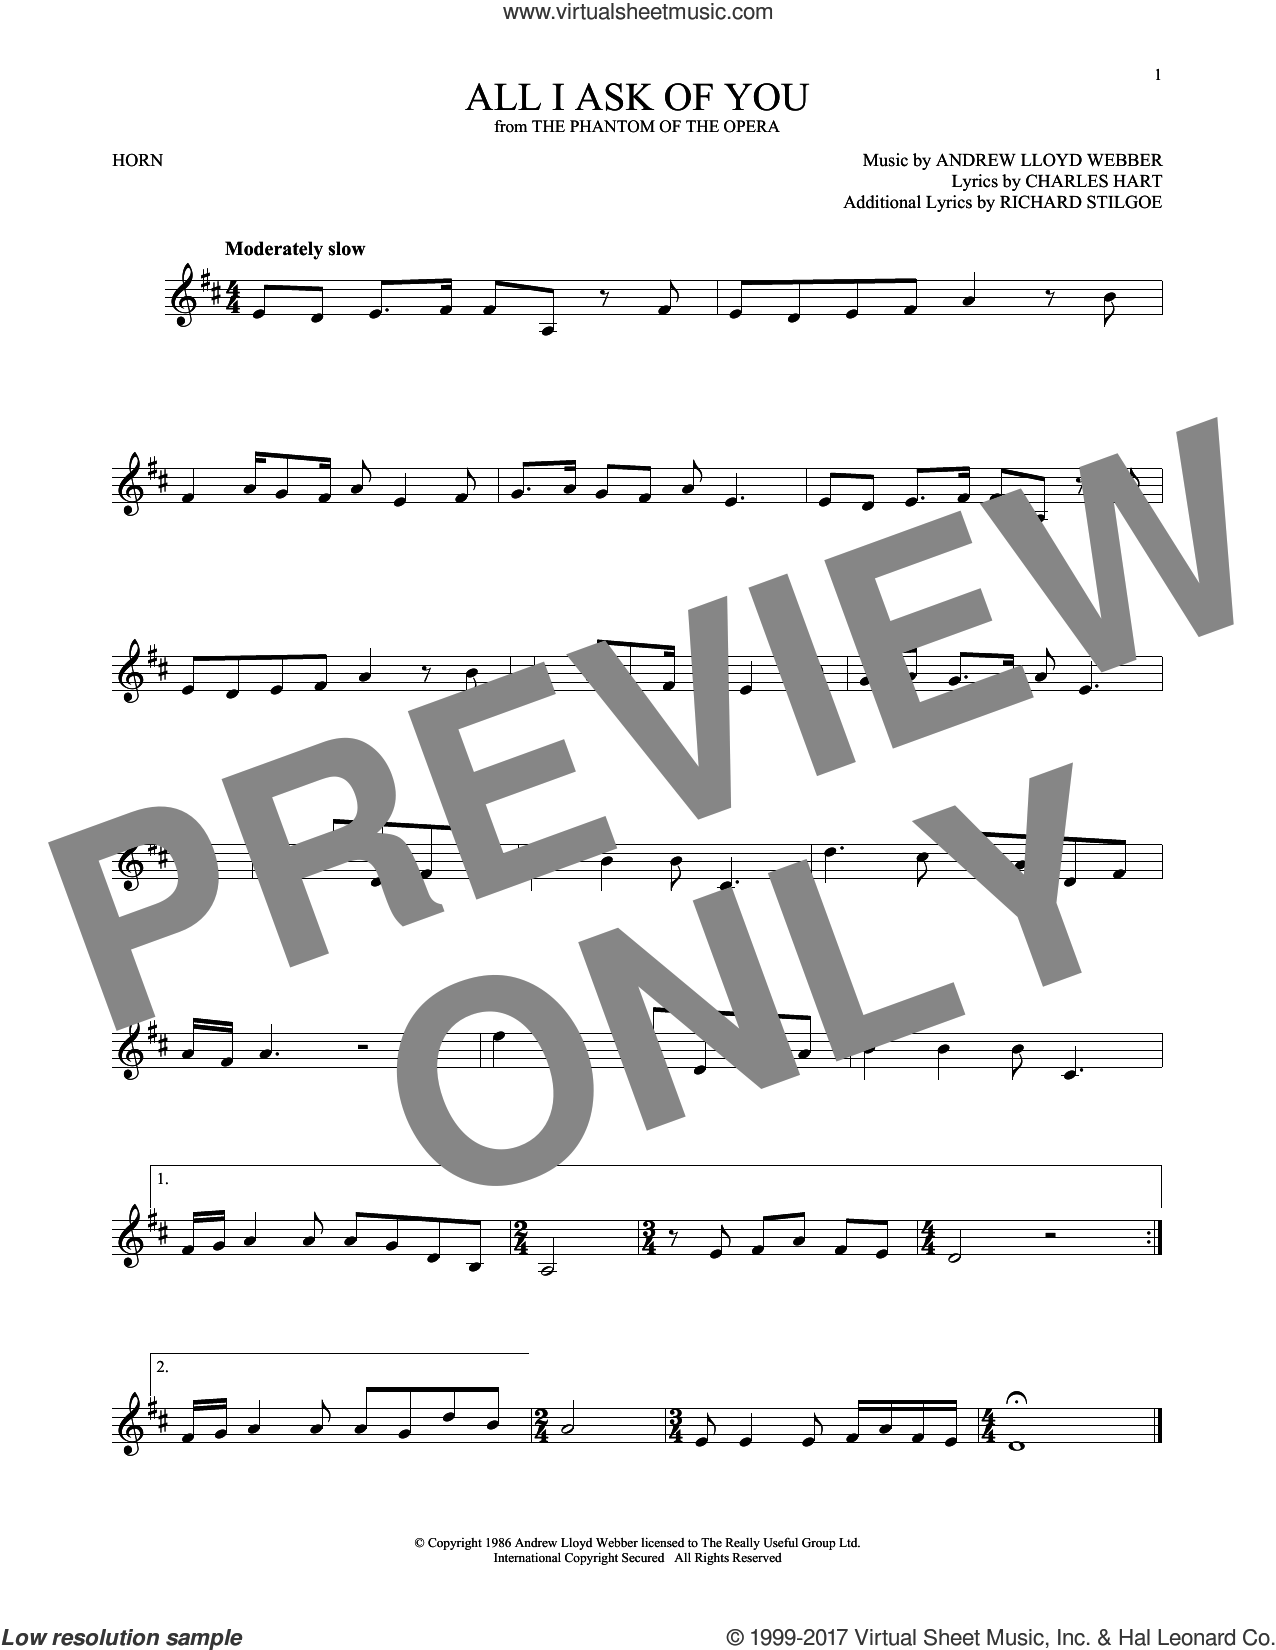 All I Ask Of You sheet music for horn solo by Andrew Lloyd Webber, Barbra Streisand, Charles Hart and Richard Stilgoe, intermediate